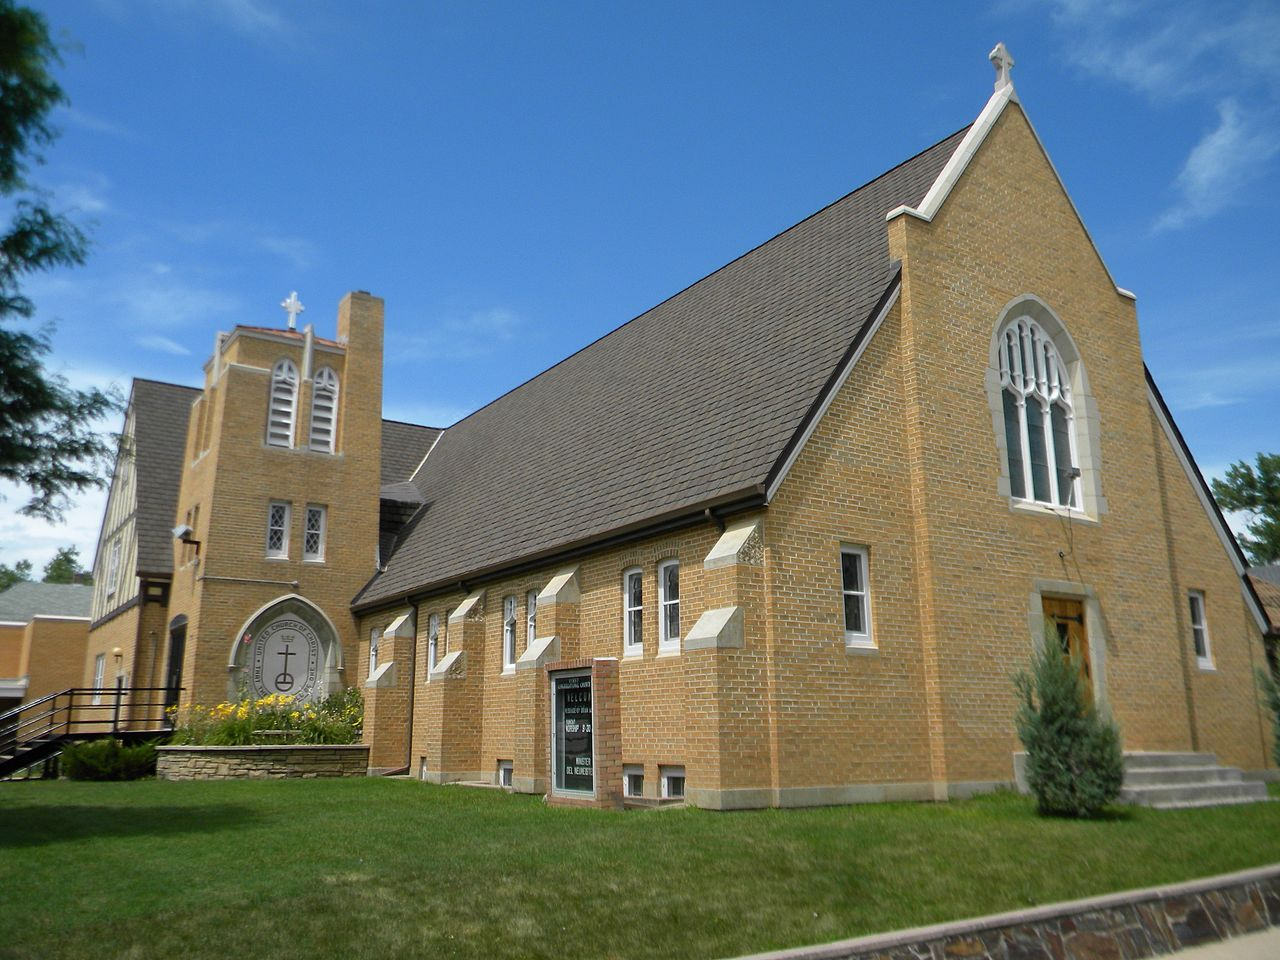 First Congregational United Church of Christ is a fine example of Tudor Revival architecture. It was built in 1949.